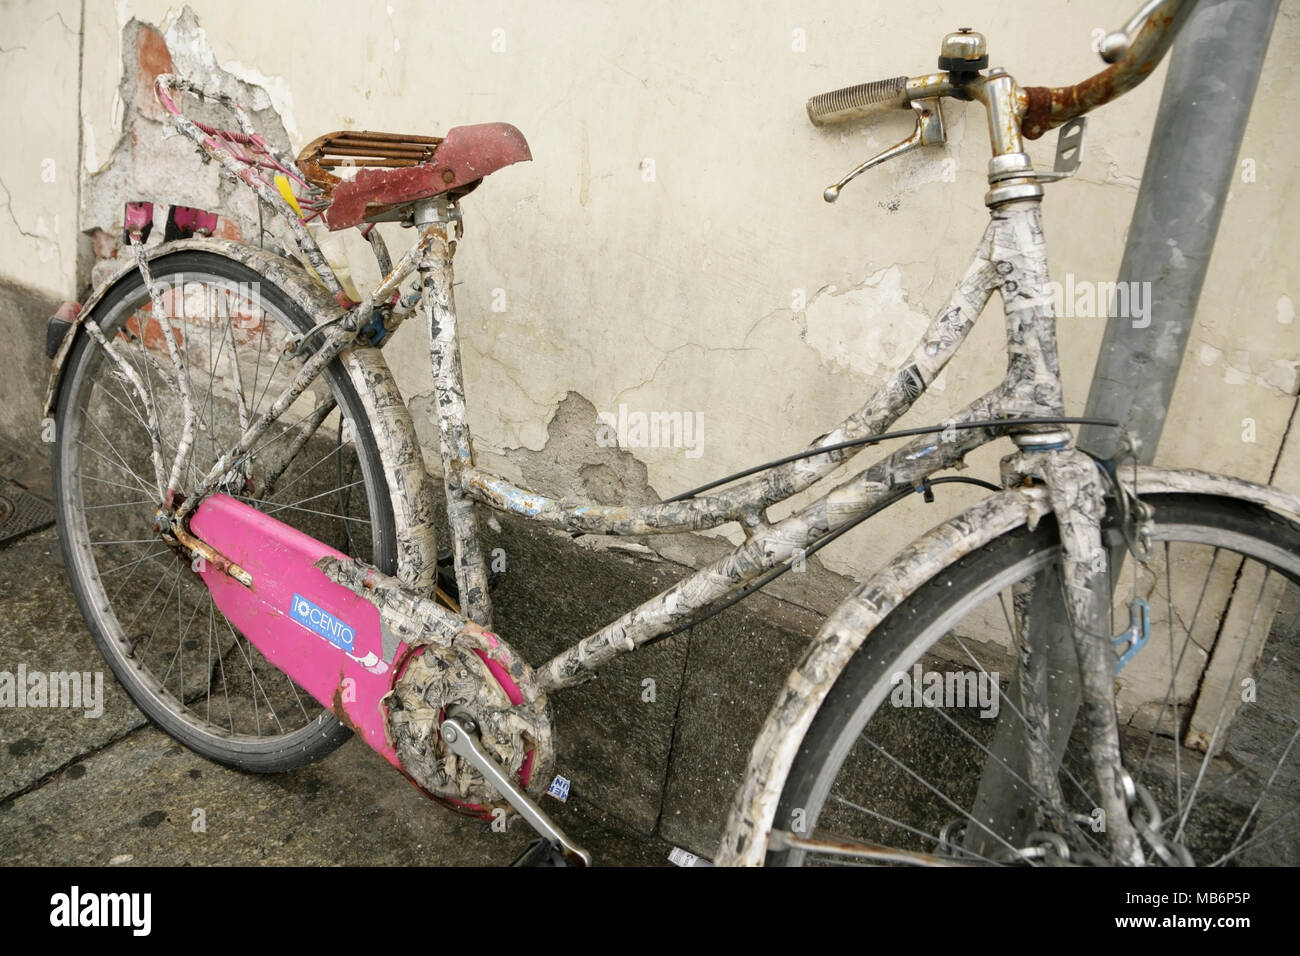 Old bicycle covered in papier mache. - Stock Image